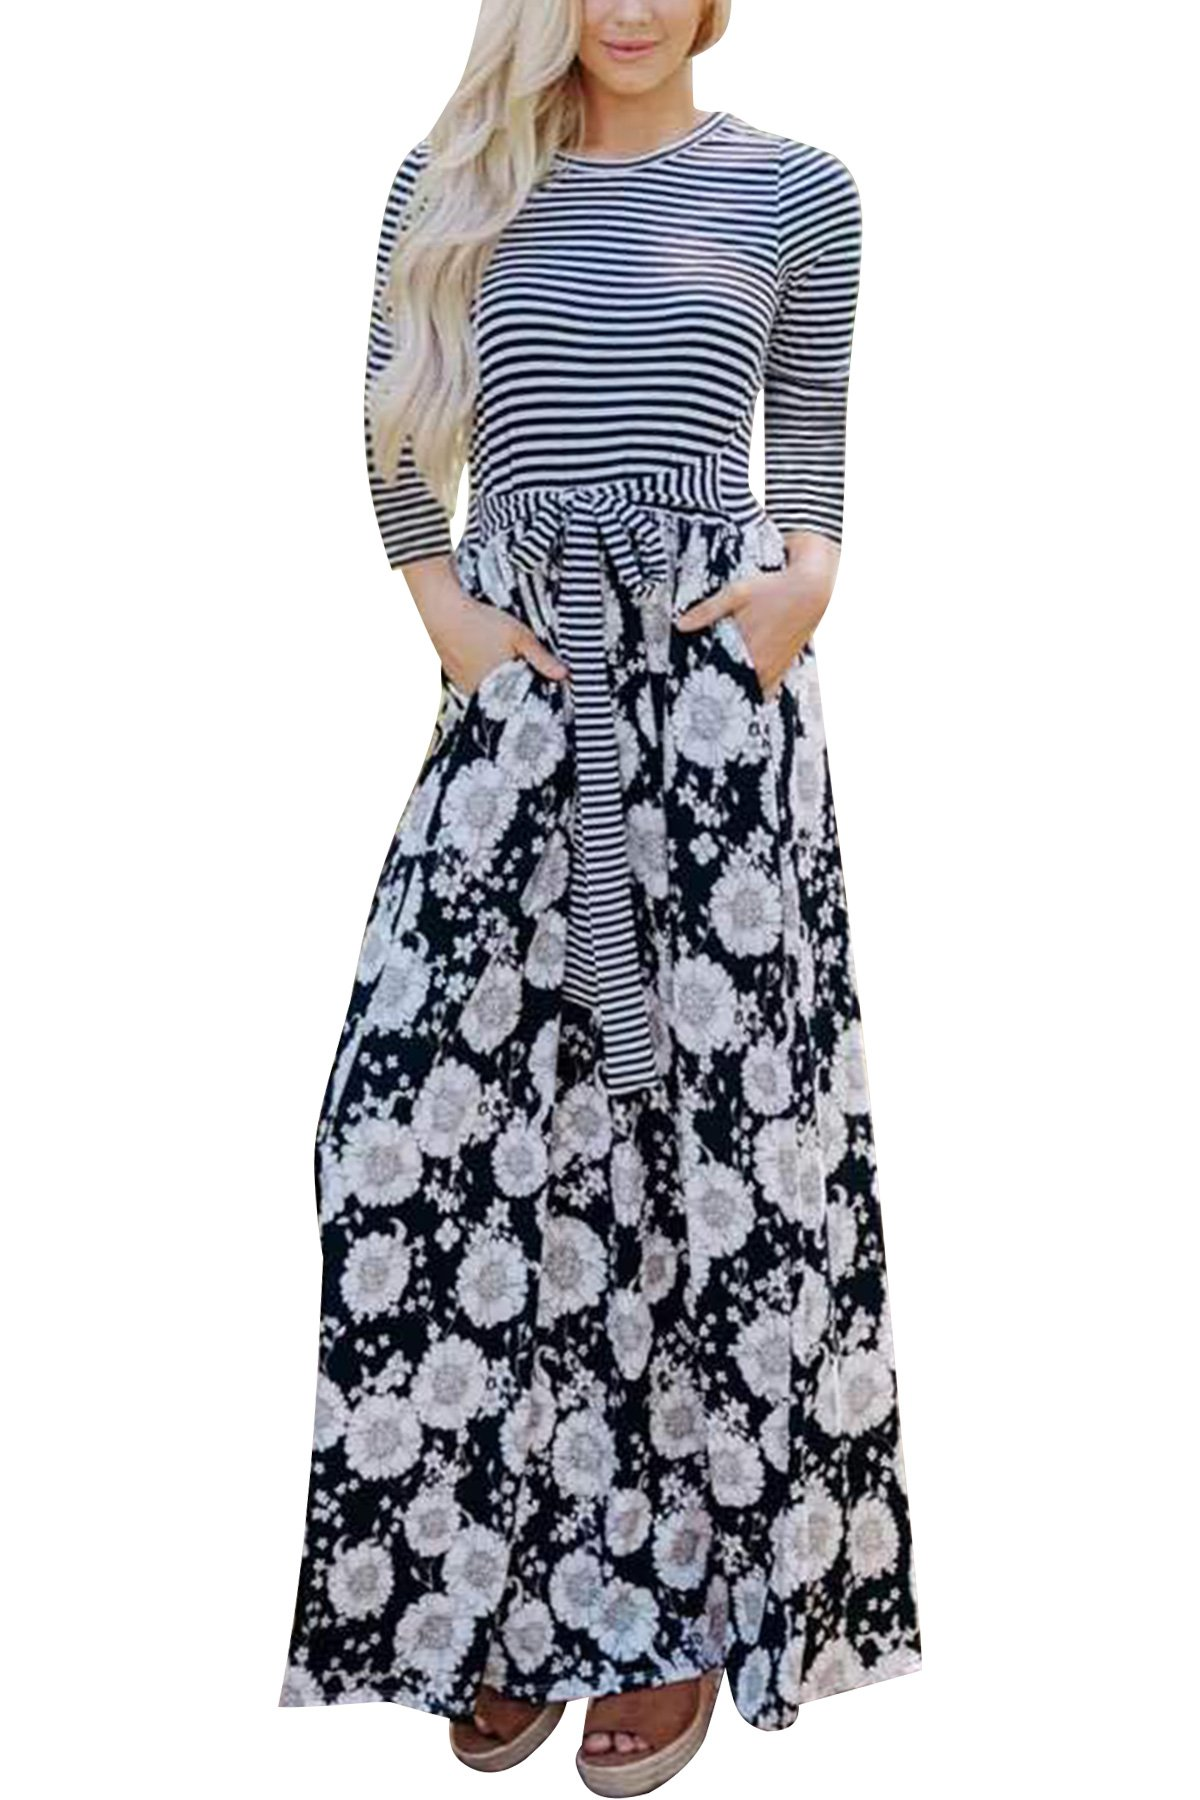 JYUAN Women's Casual Striped Floral Print Maxi Dress 3/4 Sleeve Tie Waist Long Maxi Dress Pockets